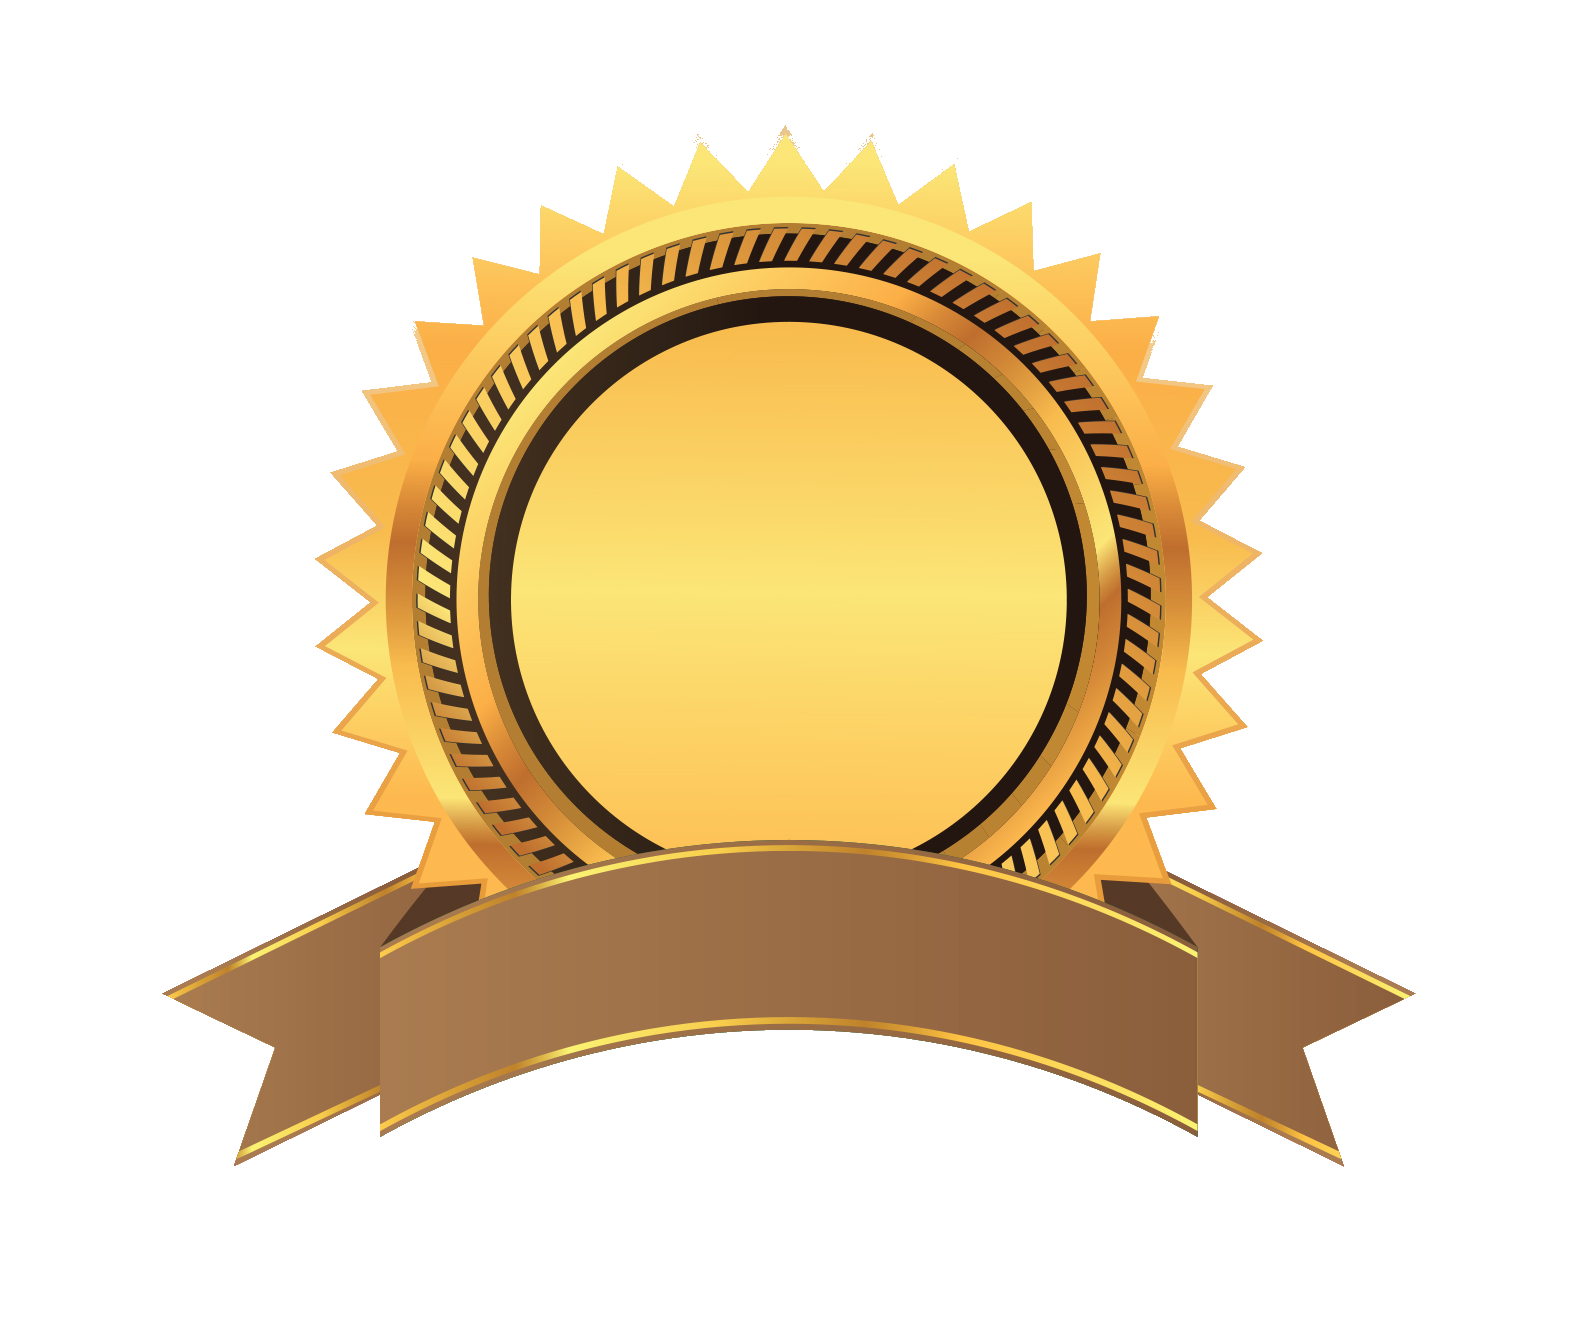 Award-PNG-Photos